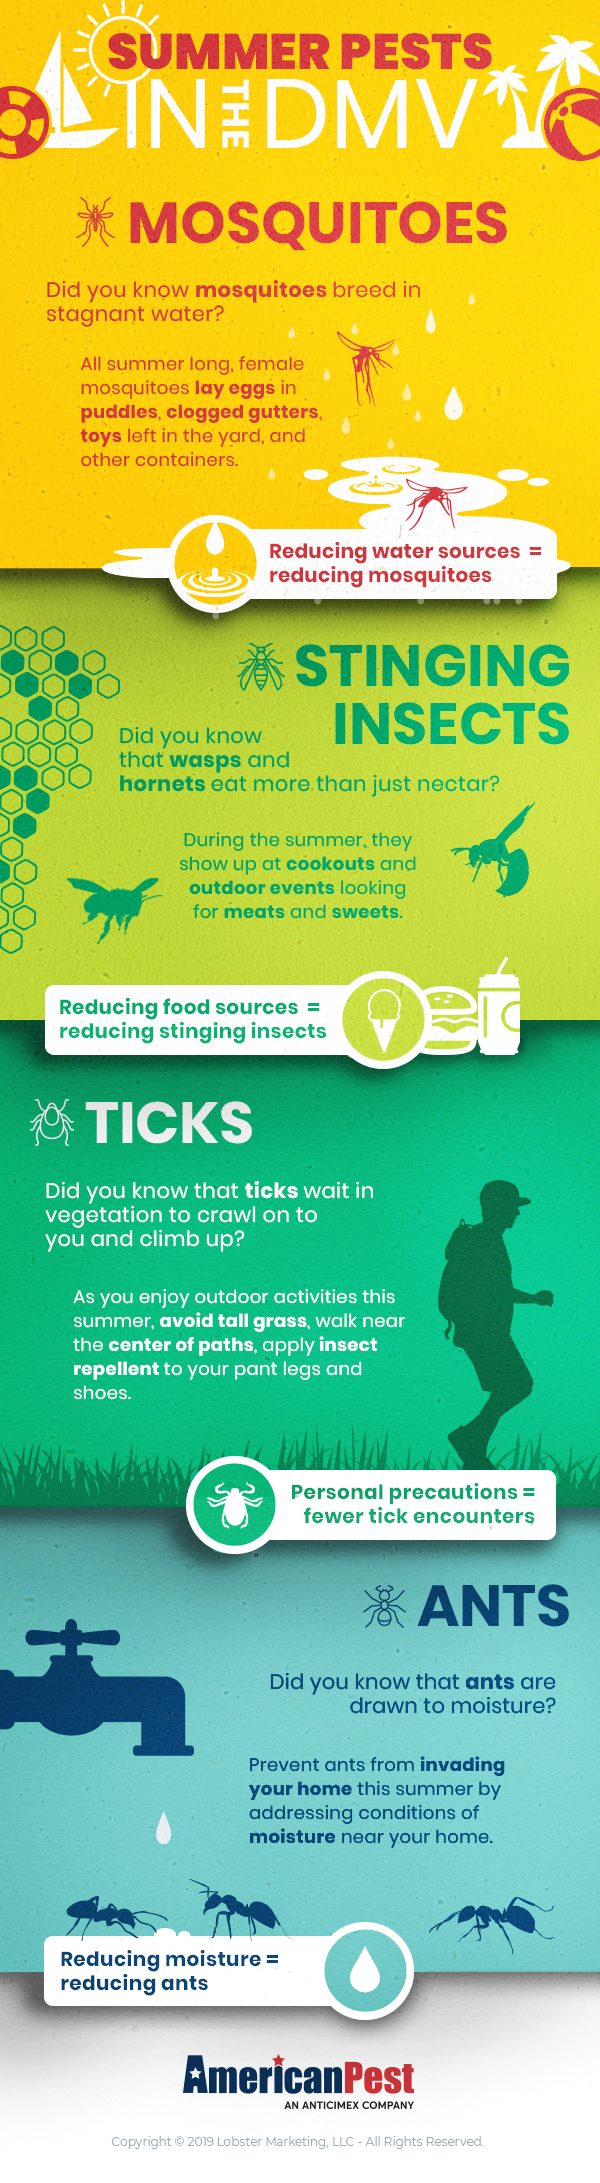 Summer Pests In The DMV Infographic